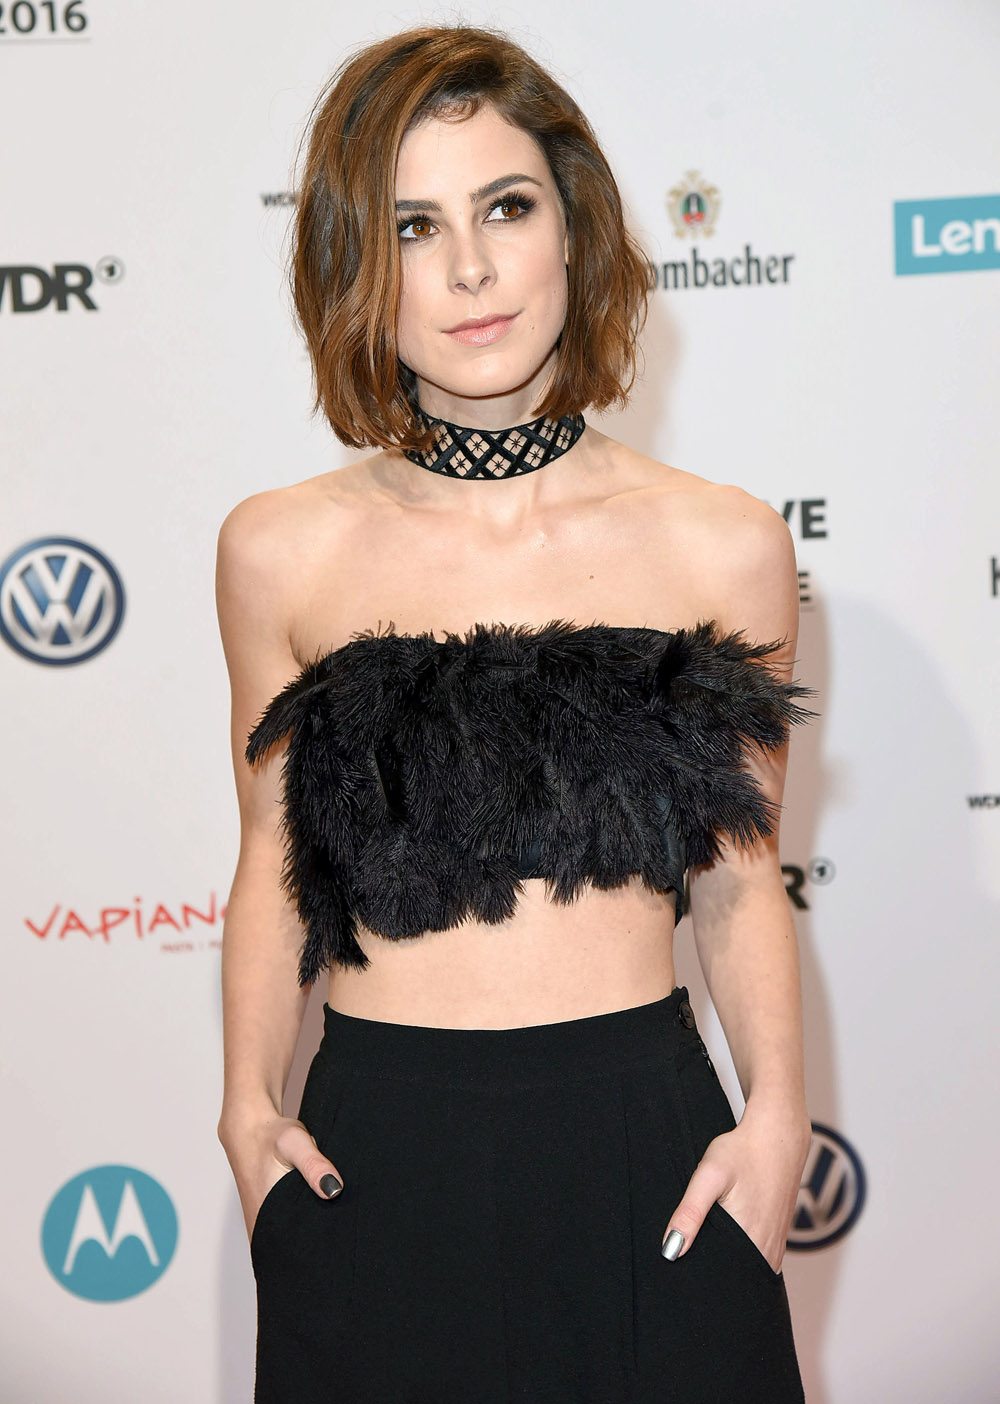 Lena Meyer-Landrut on erotic and porn pictures and movies